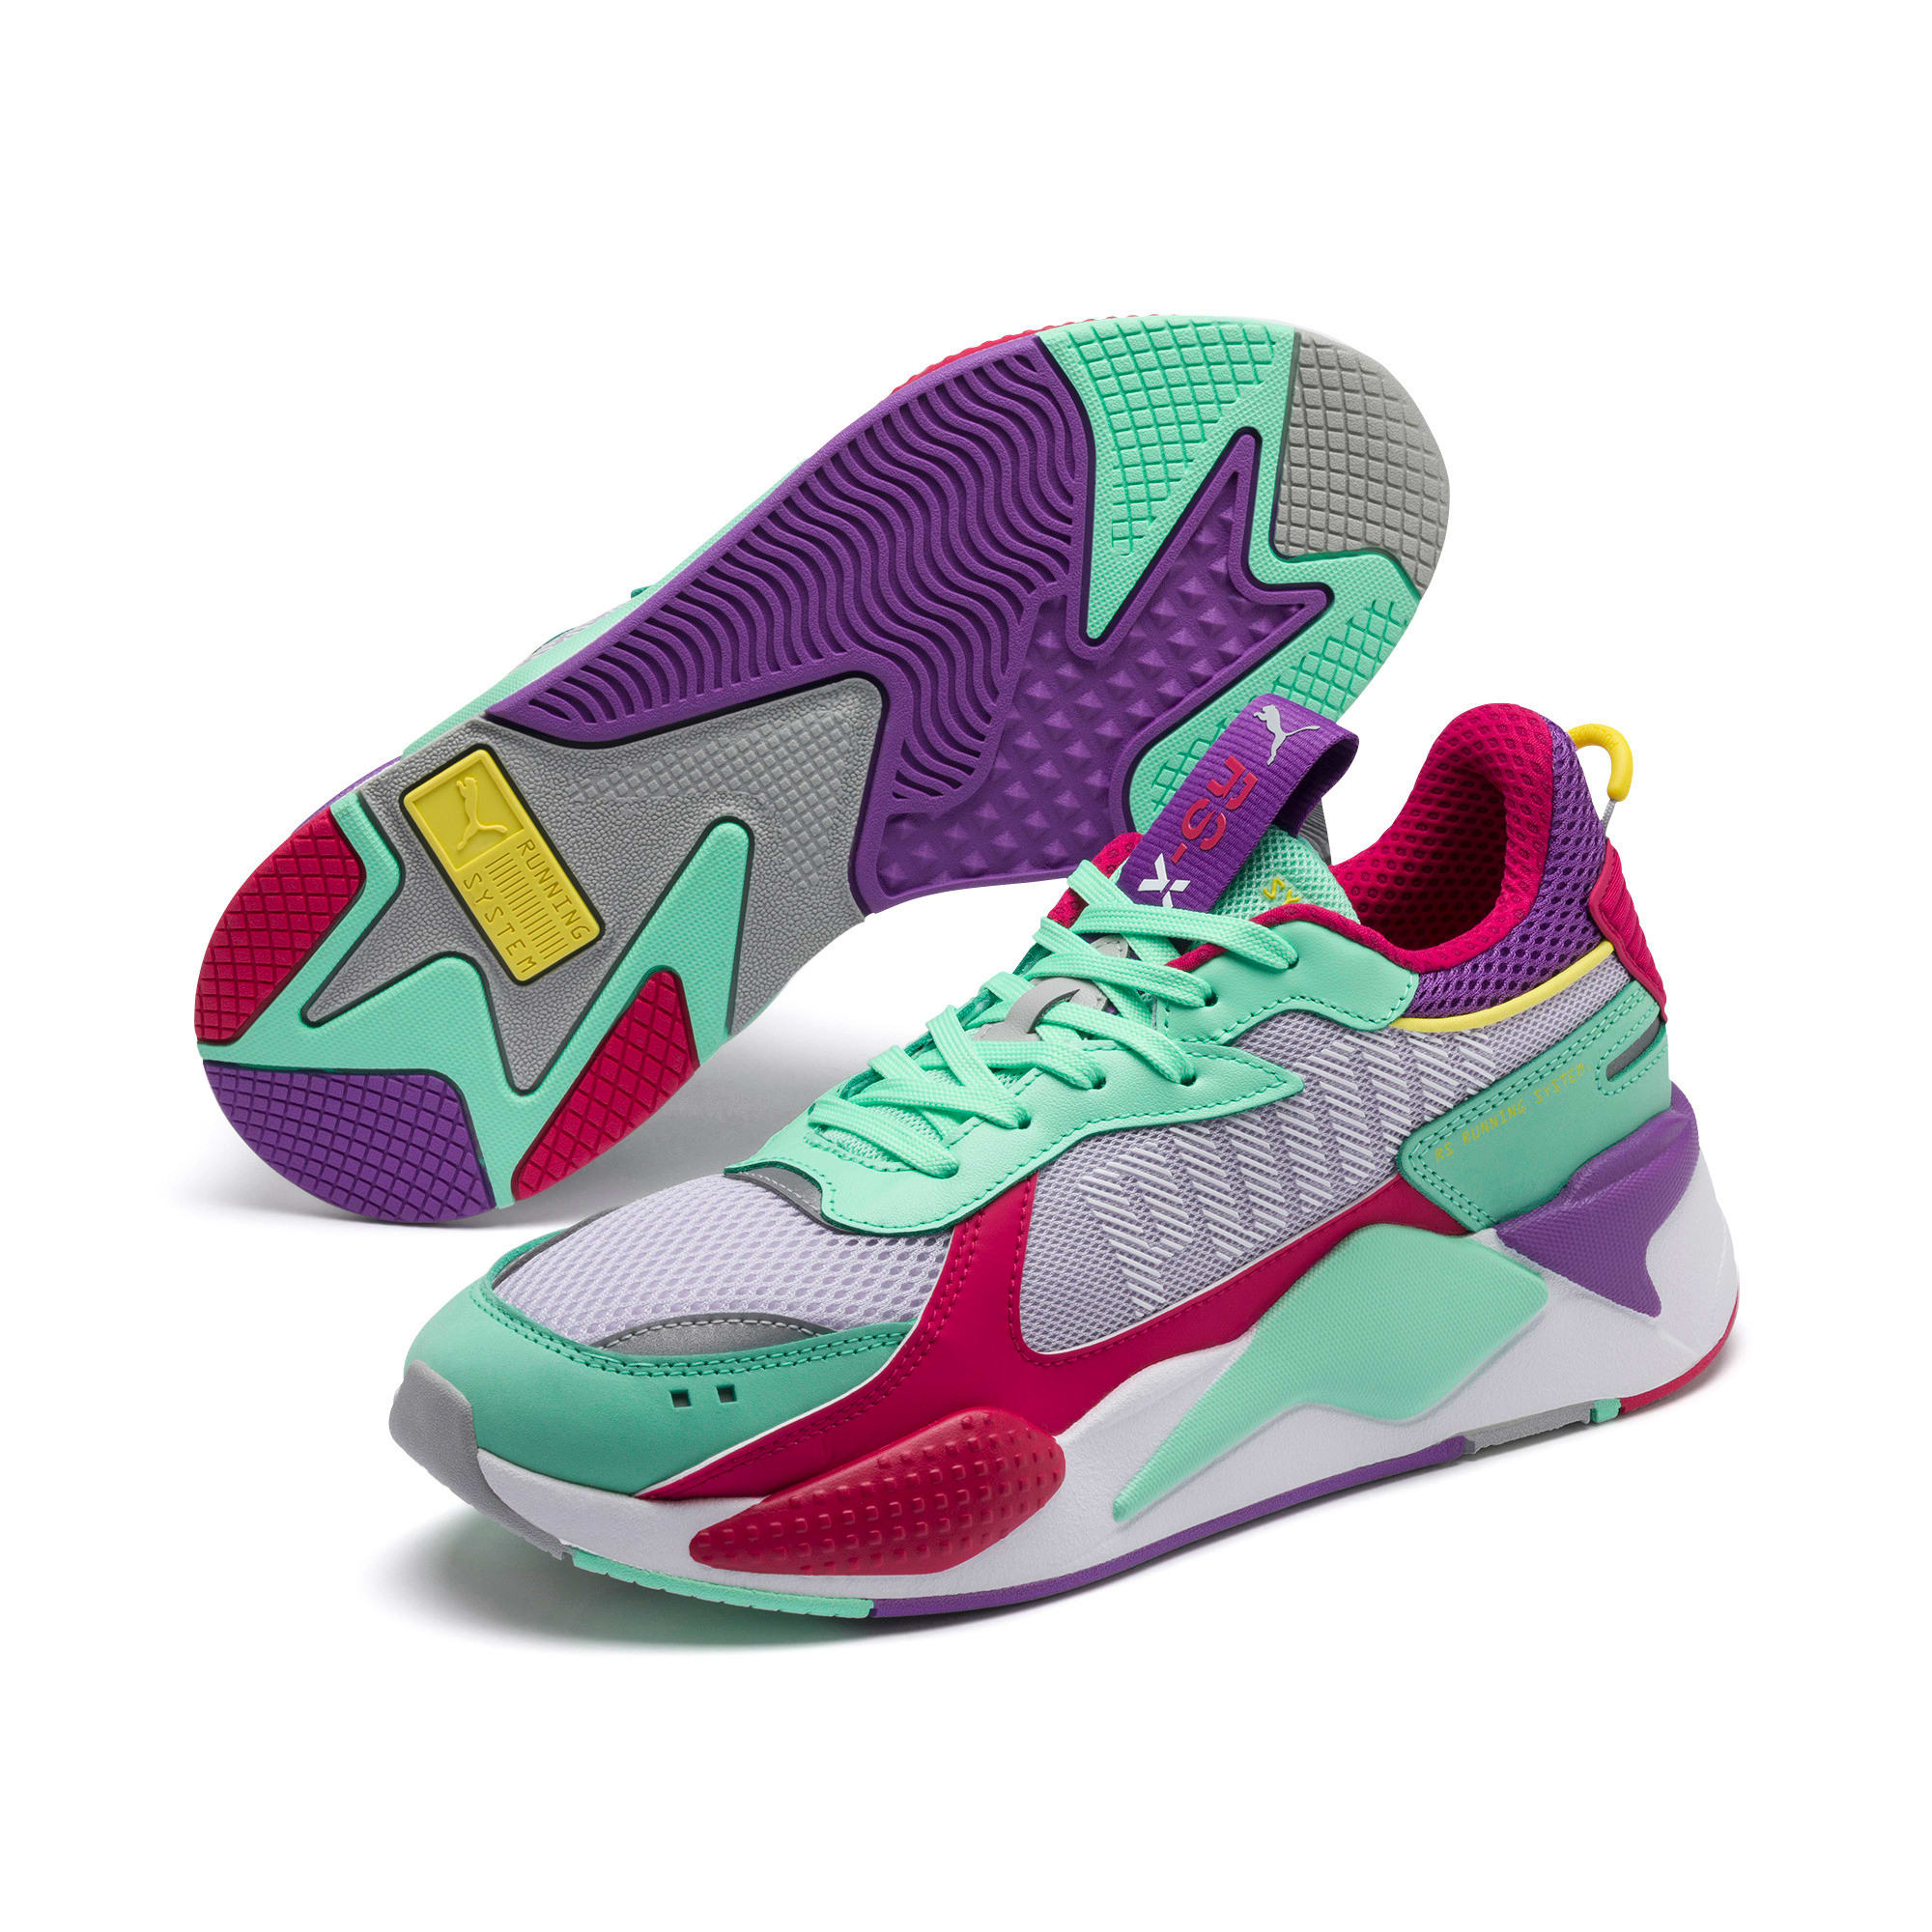 Thumbnail 2 of RS-X Bold Trainers, PurHeather-GrGlimmer-LPotion, medium